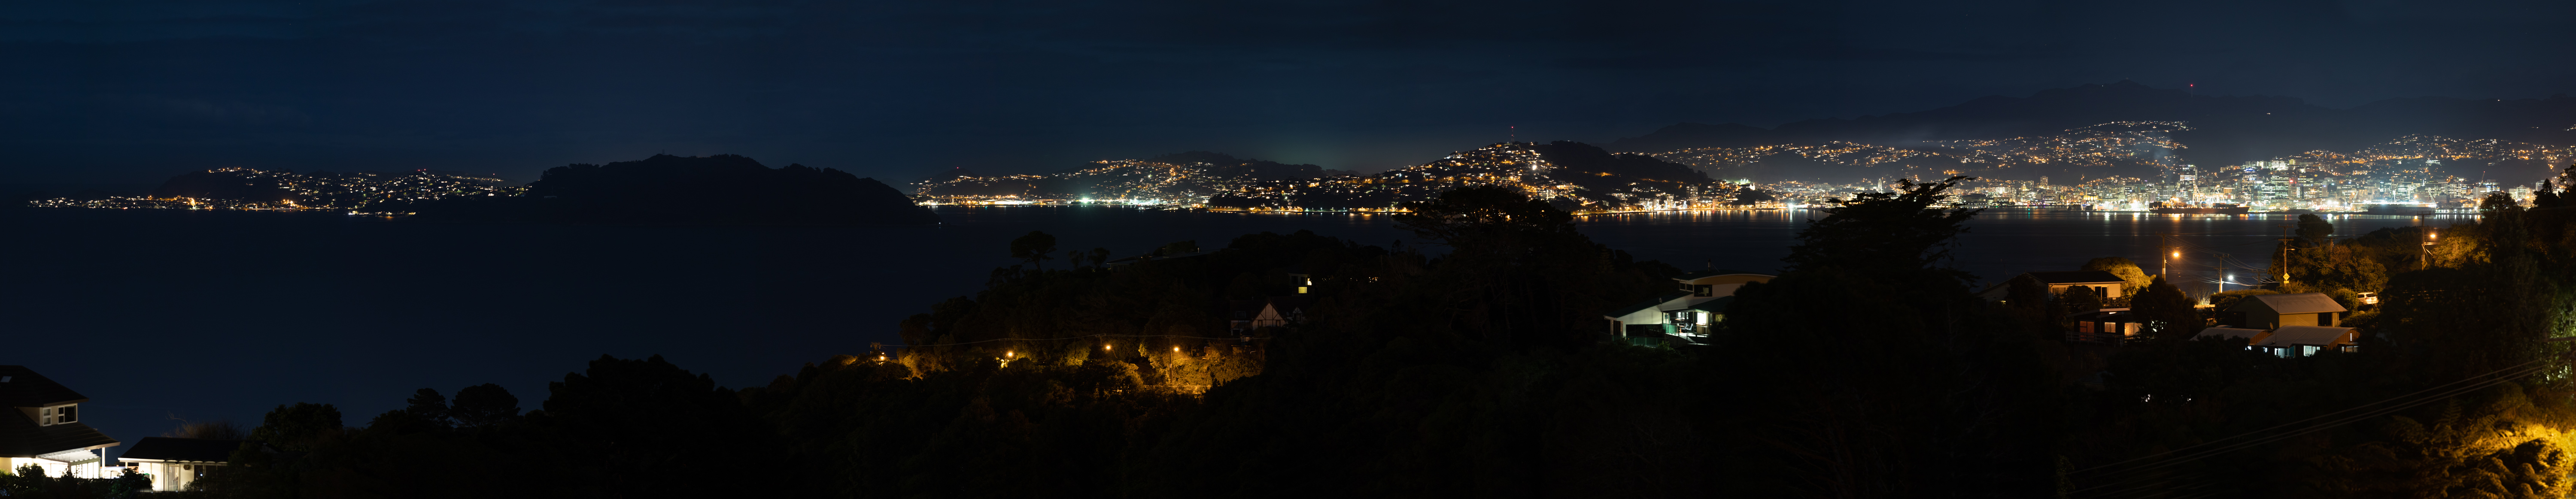 KoroKoro-Wellington NightShoot 1469-Pano-2